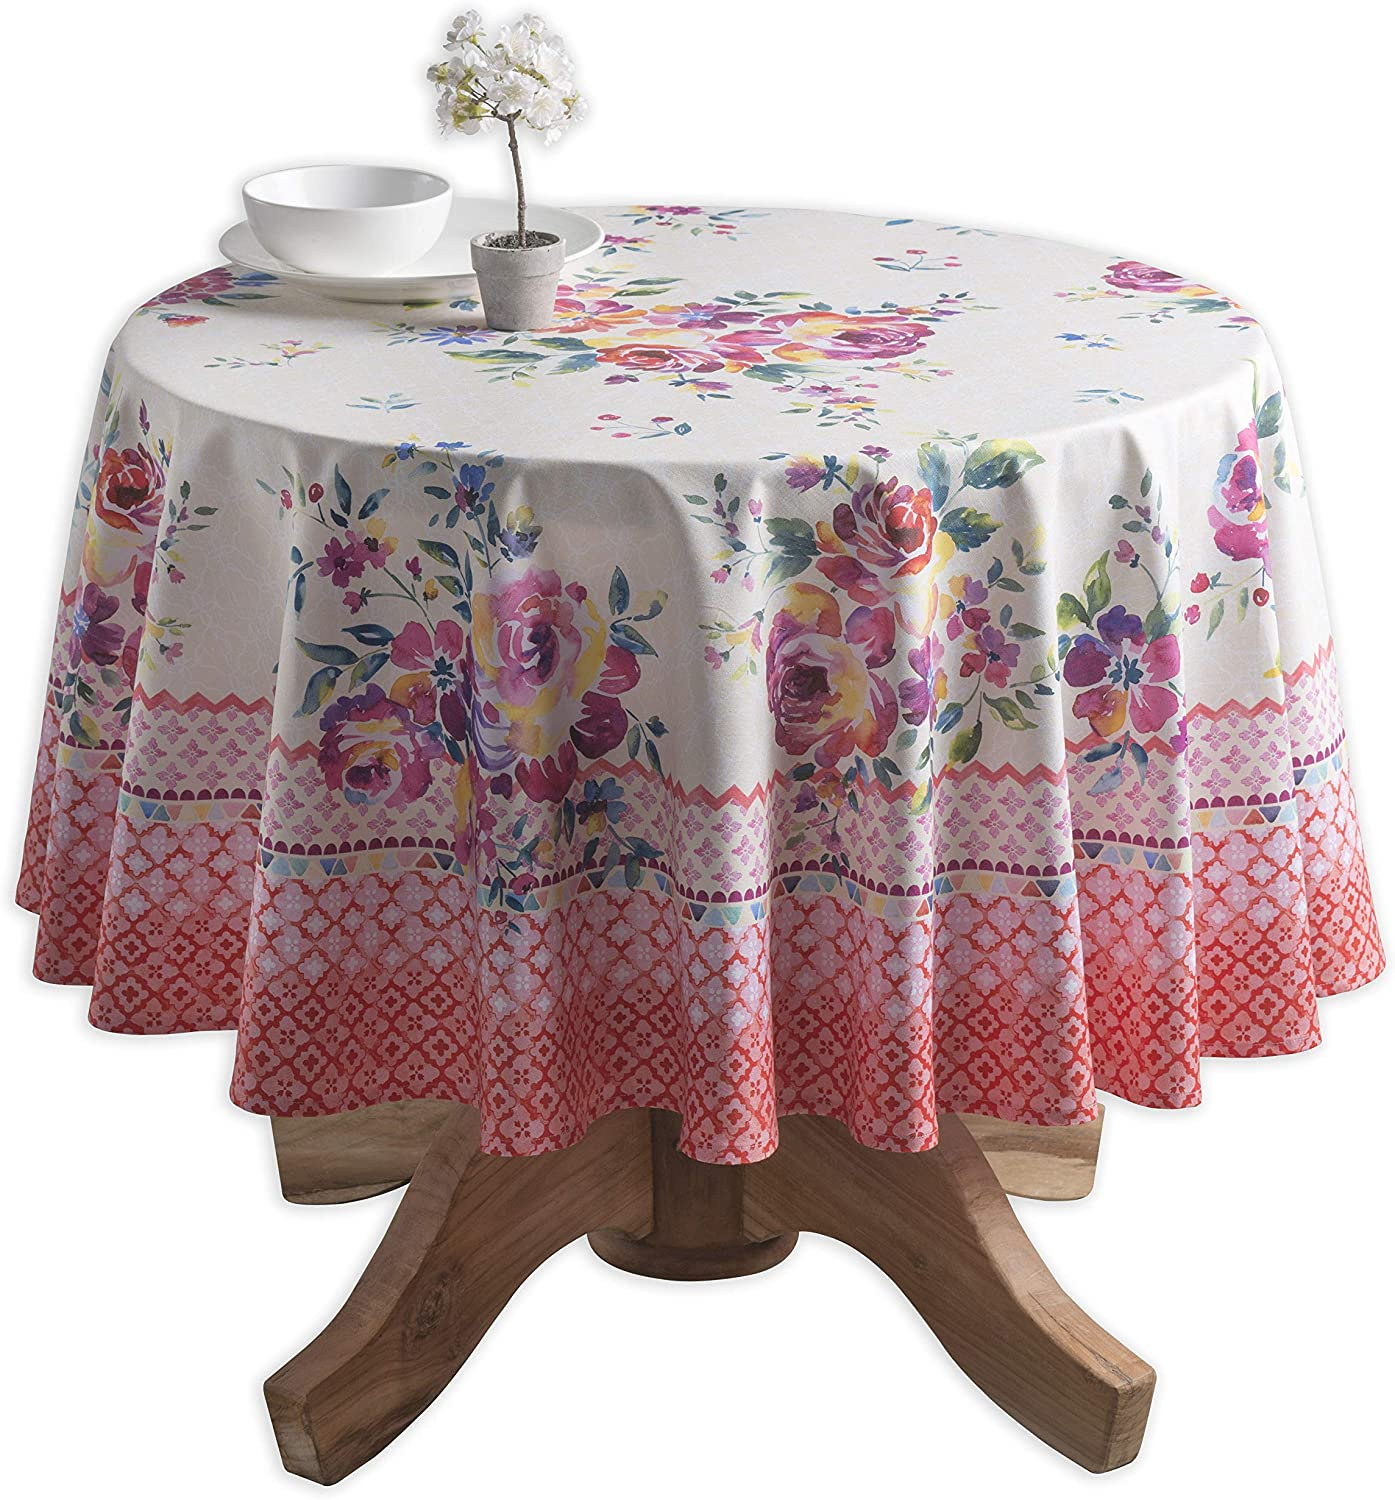 100% Cotton Round Tablecloth 63 Inch Diameter for Kitchen | Home | Dining Room | Tabletop | Decorative Patio | Parties | Weddings | Outdoor | Spring/Summer Collection-(Rose Garden)